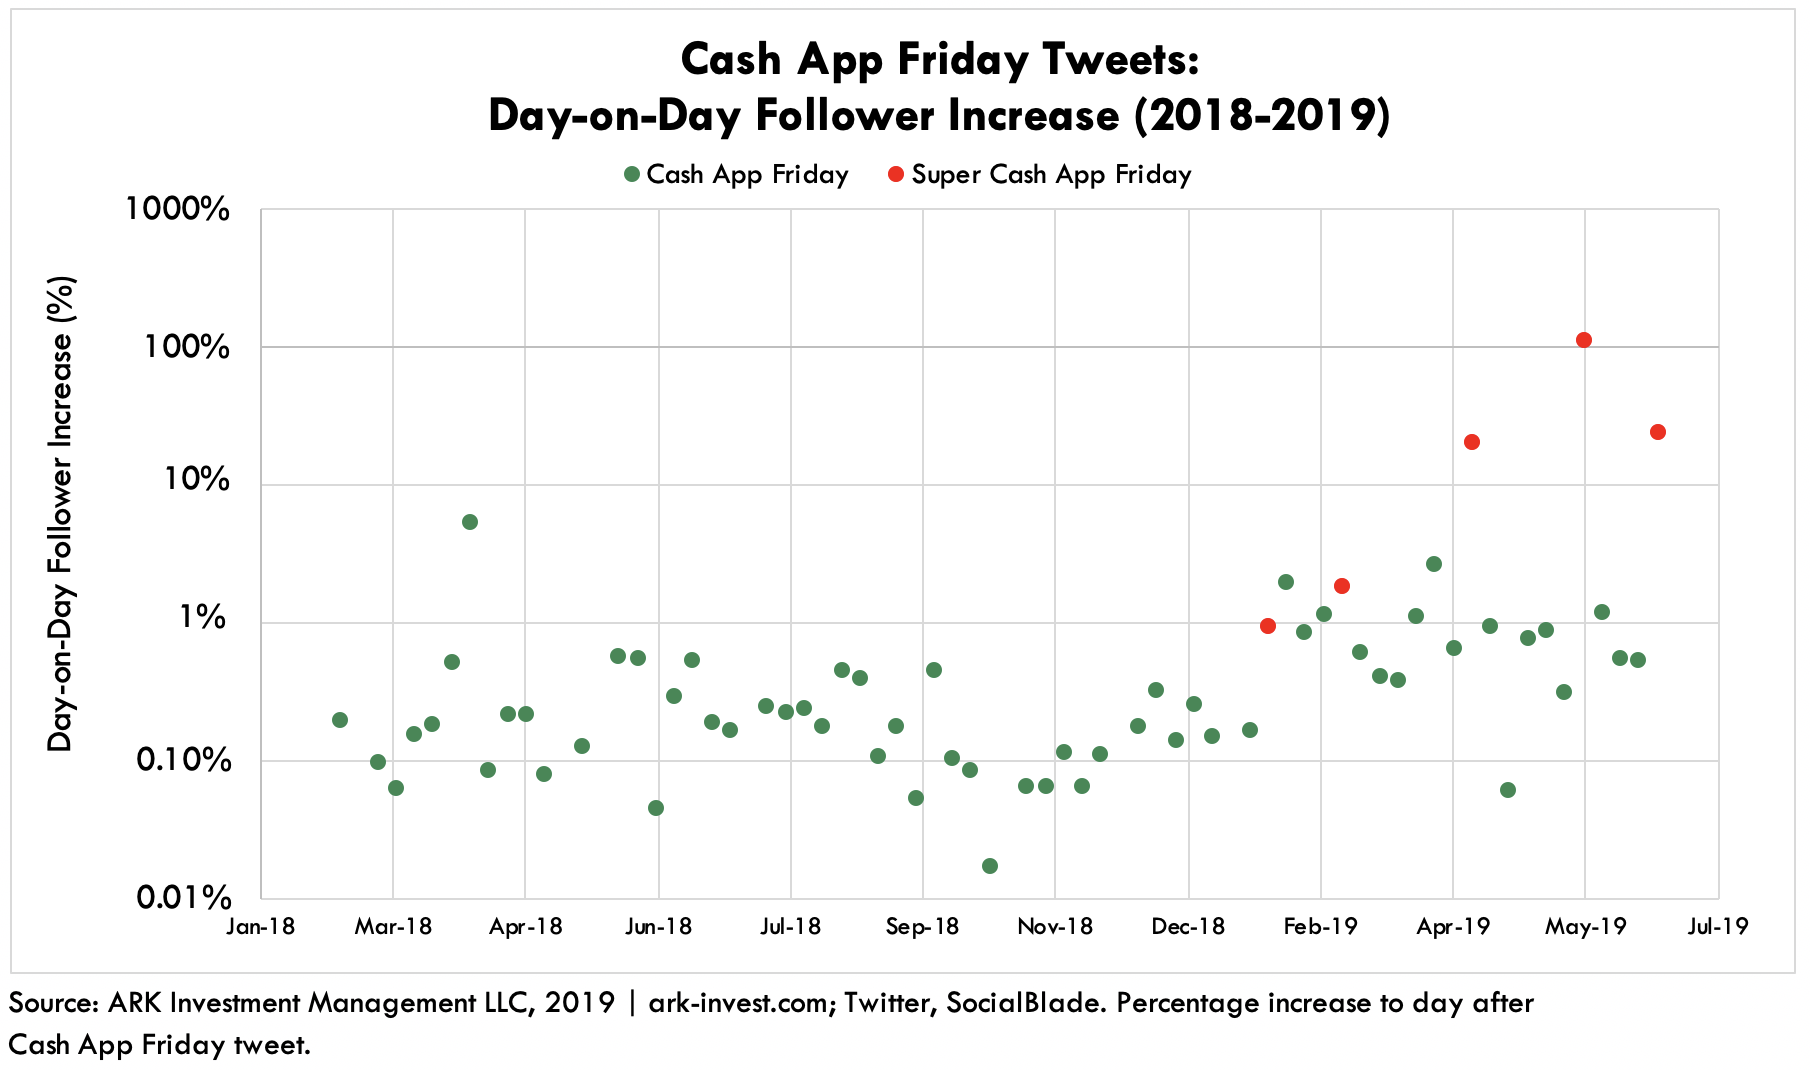 Cash App Twitter Friday Tweets Follower Increase